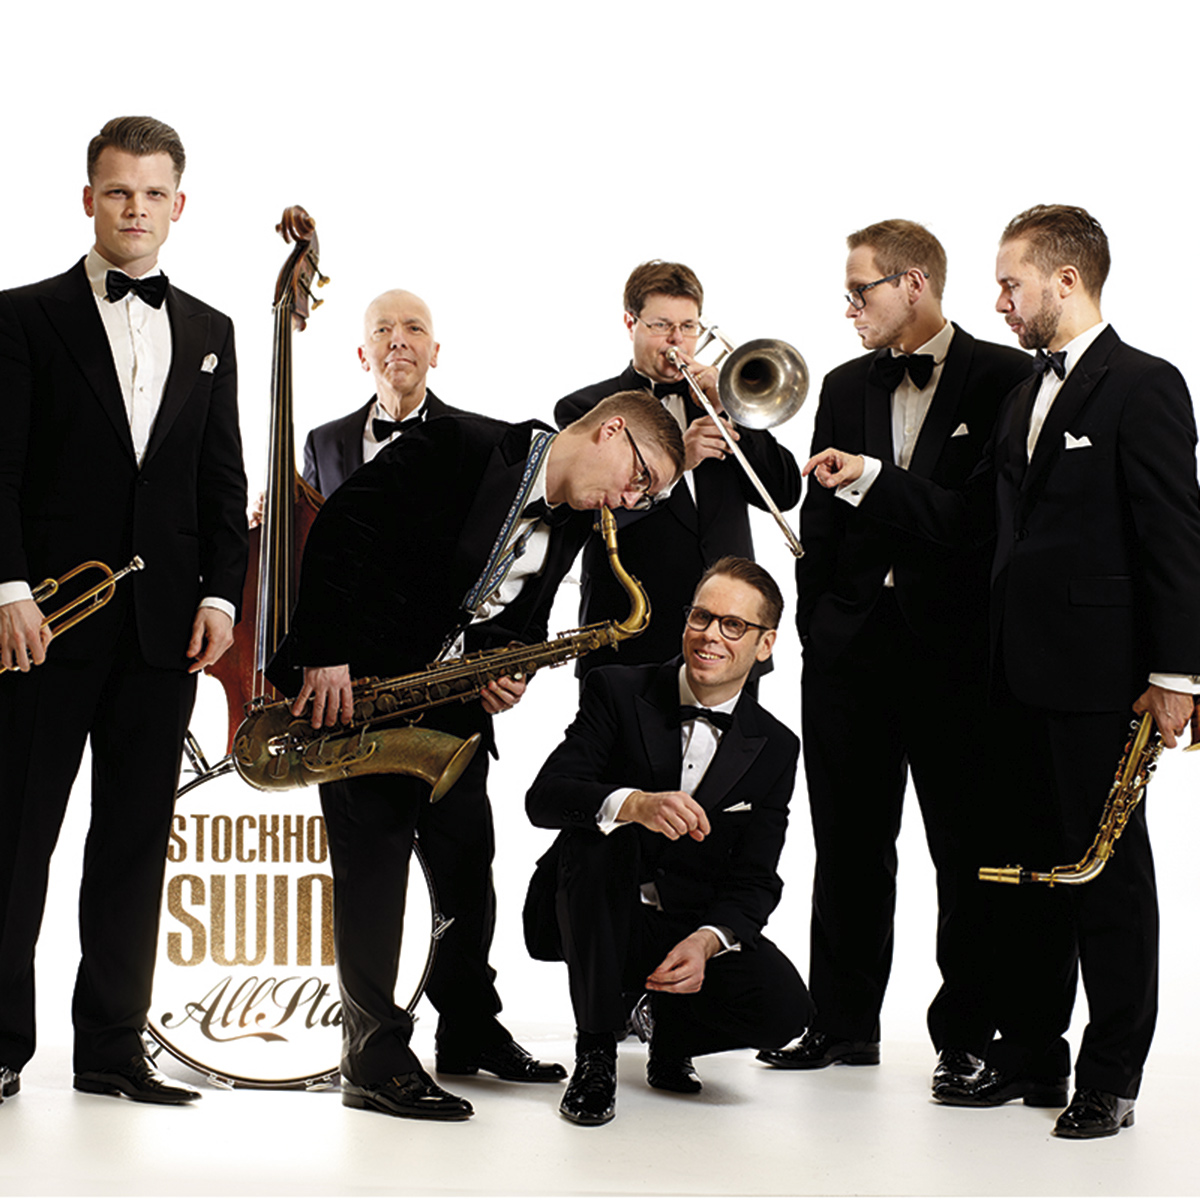 Stockholm Swing All Stars på Göteborgs Konserthus den 2 feb 2019